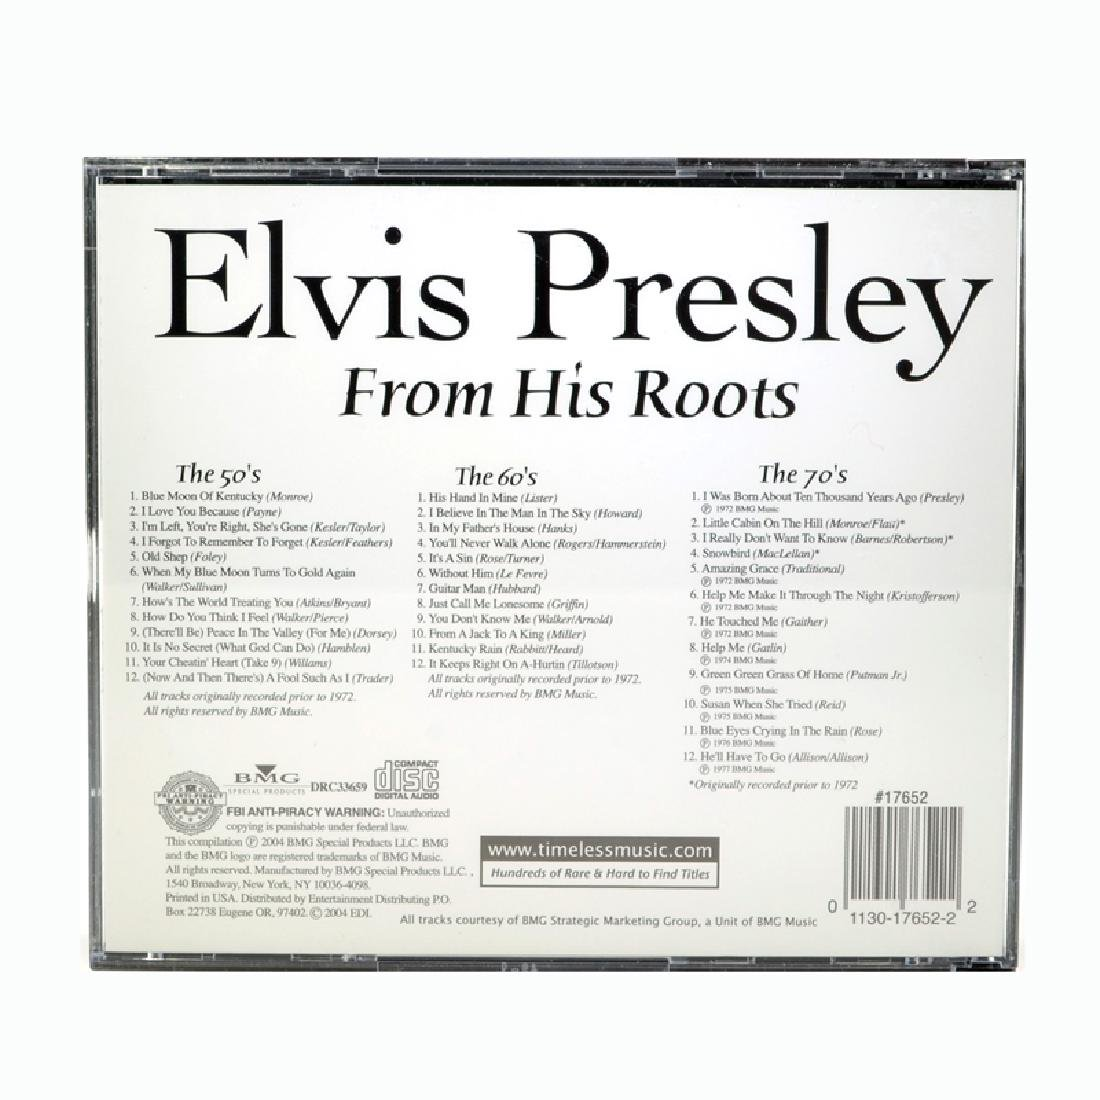 Elvis Presley From His Roots 3 CD Box Set - 2